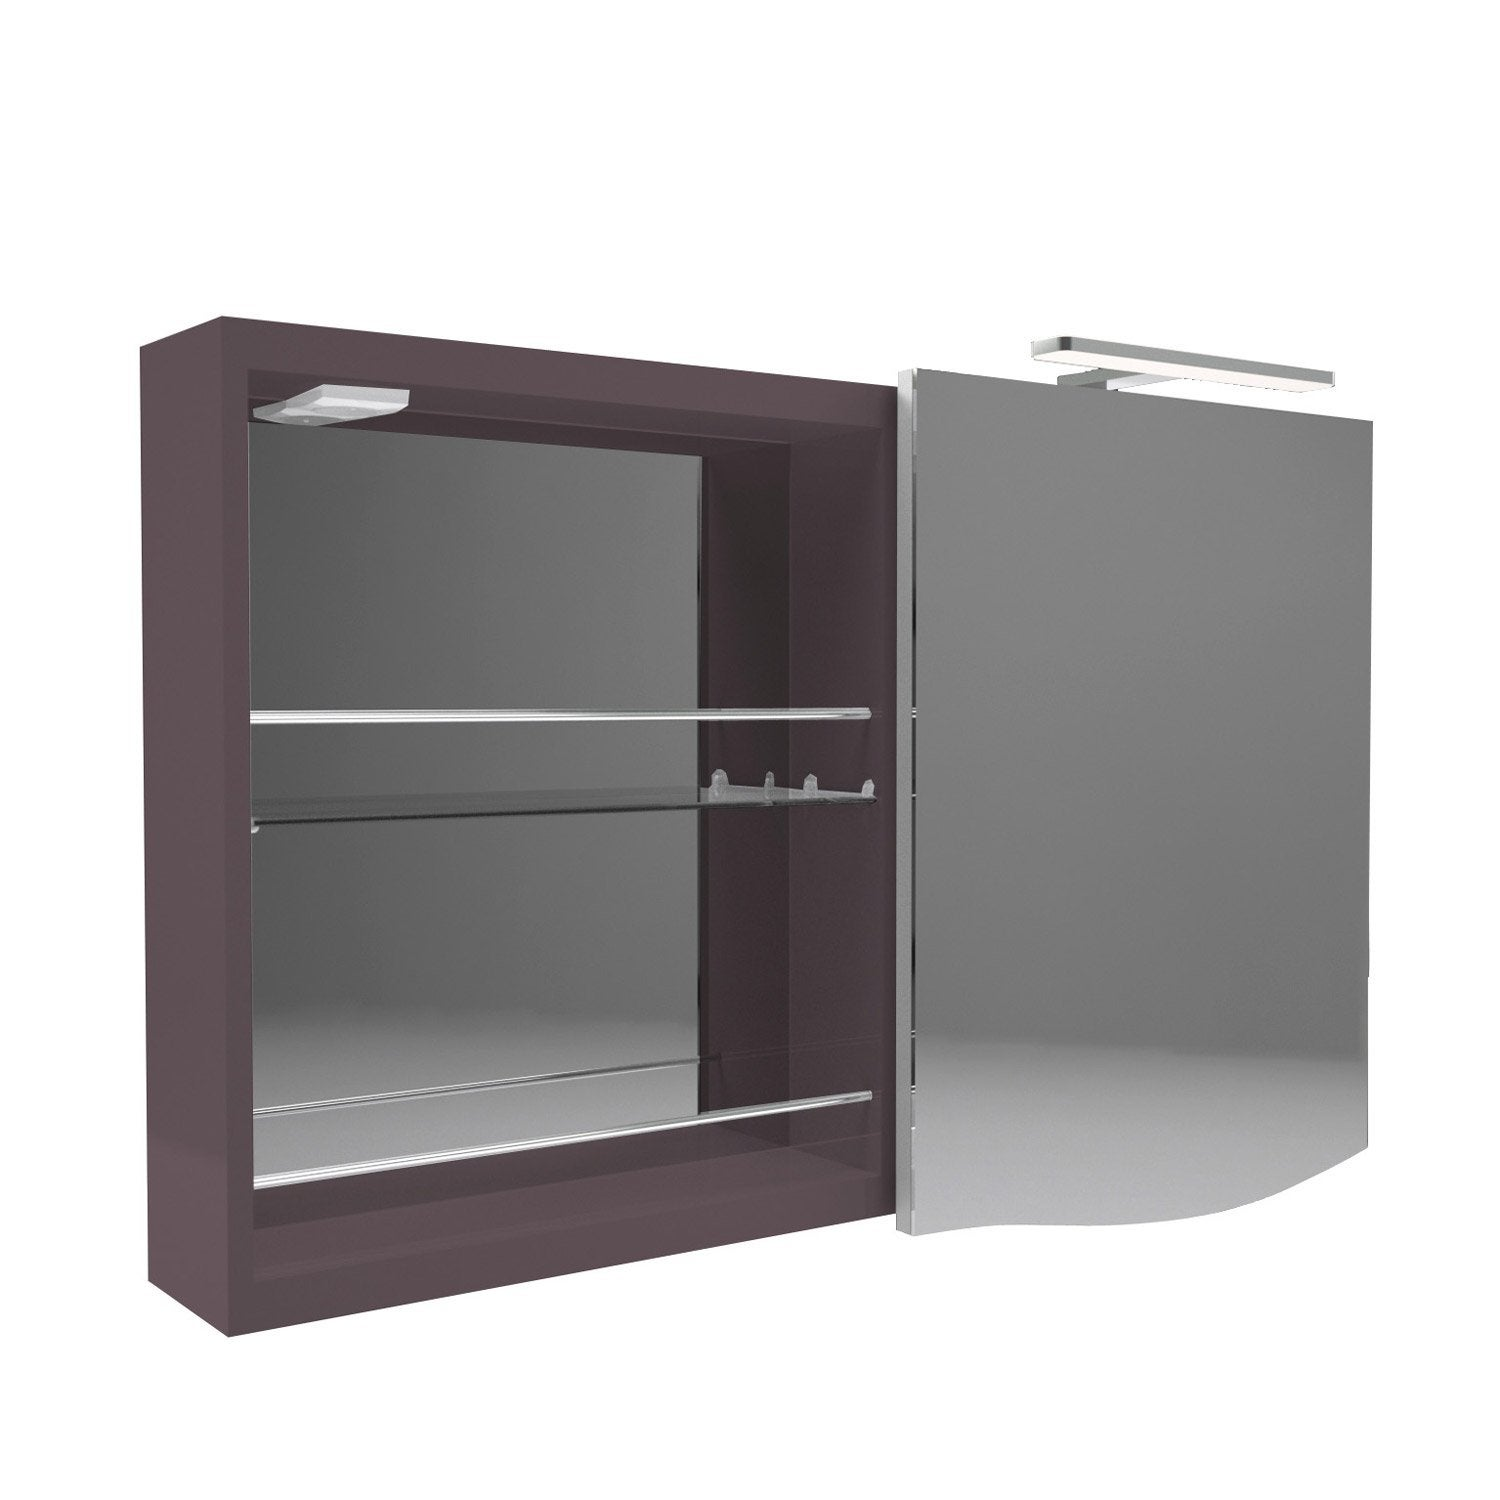 armoire de toilette lumineuse l 100 cm marron decotec elegance leroy merlin. Black Bedroom Furniture Sets. Home Design Ideas